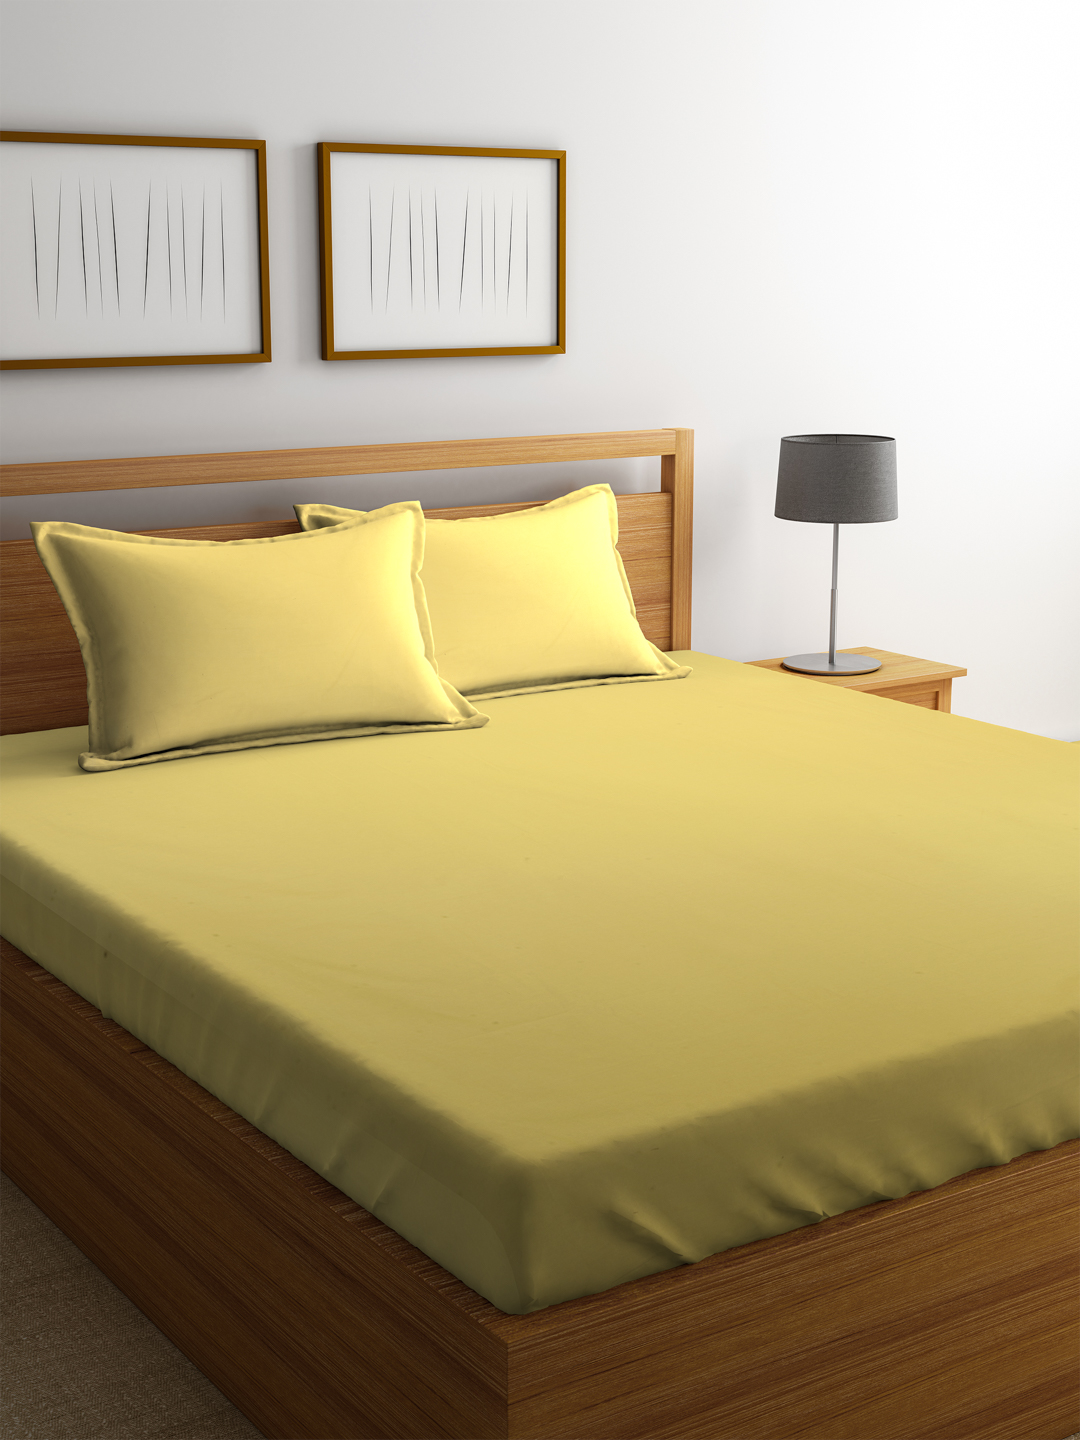 Portico Supercale Cotton Double Bed Sheets in Golden Colour by Portico